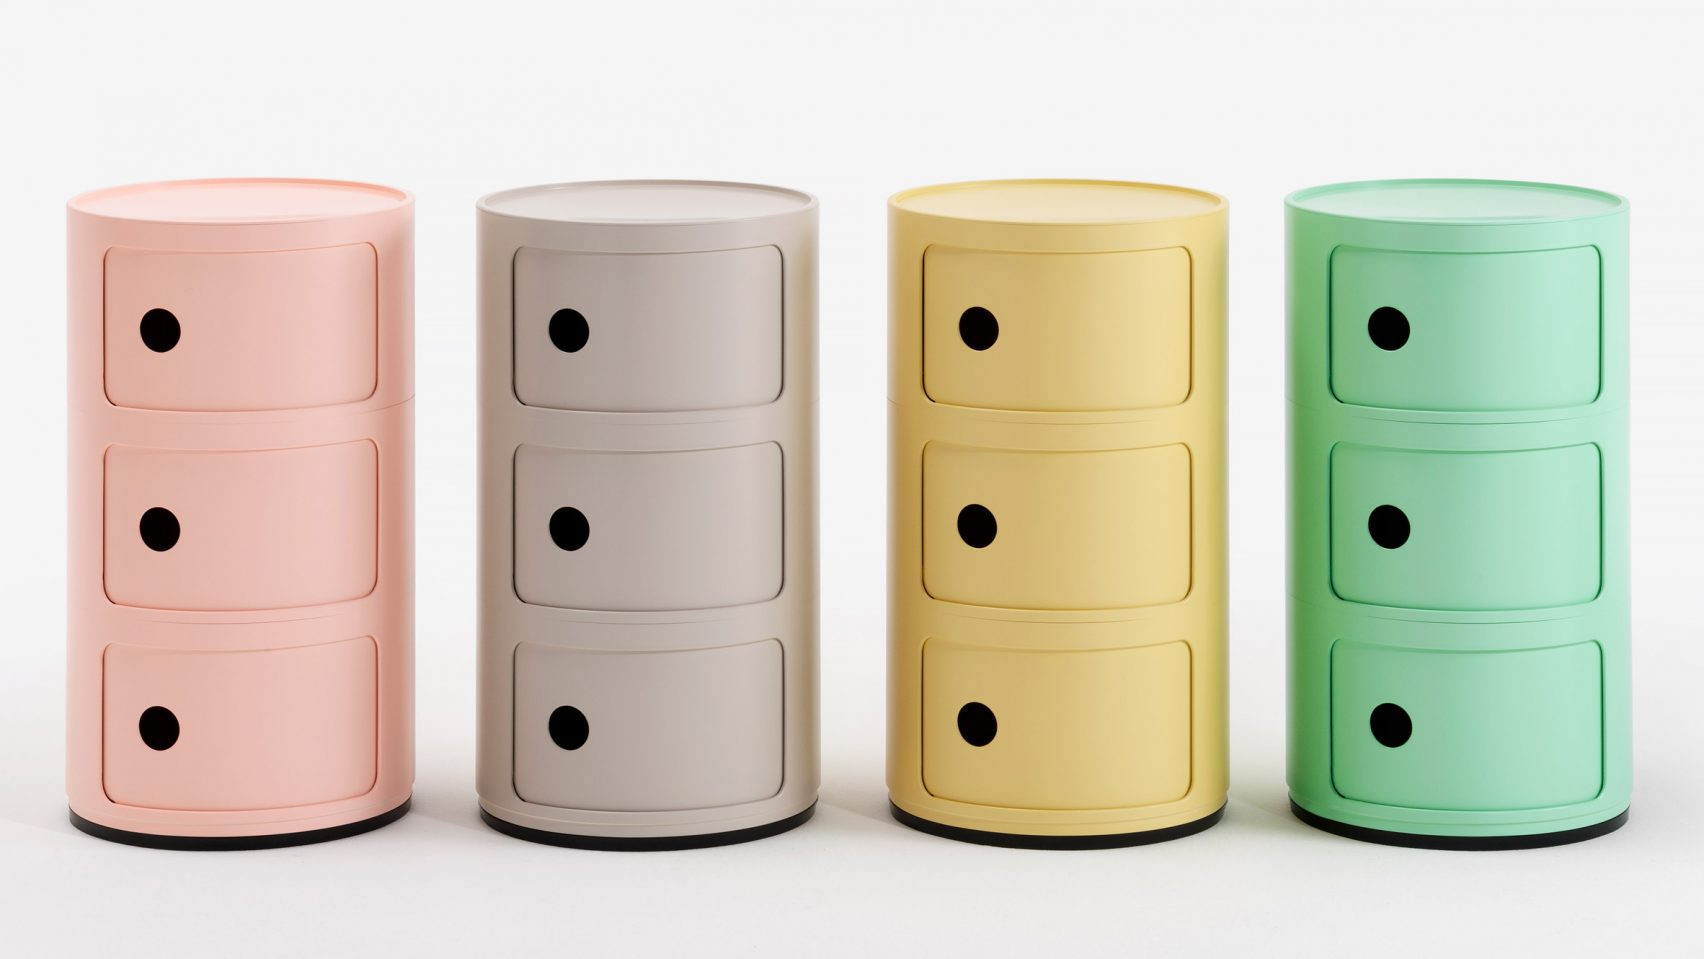 Kartell has released a bioplastic version of its iconic Componibili storage unit